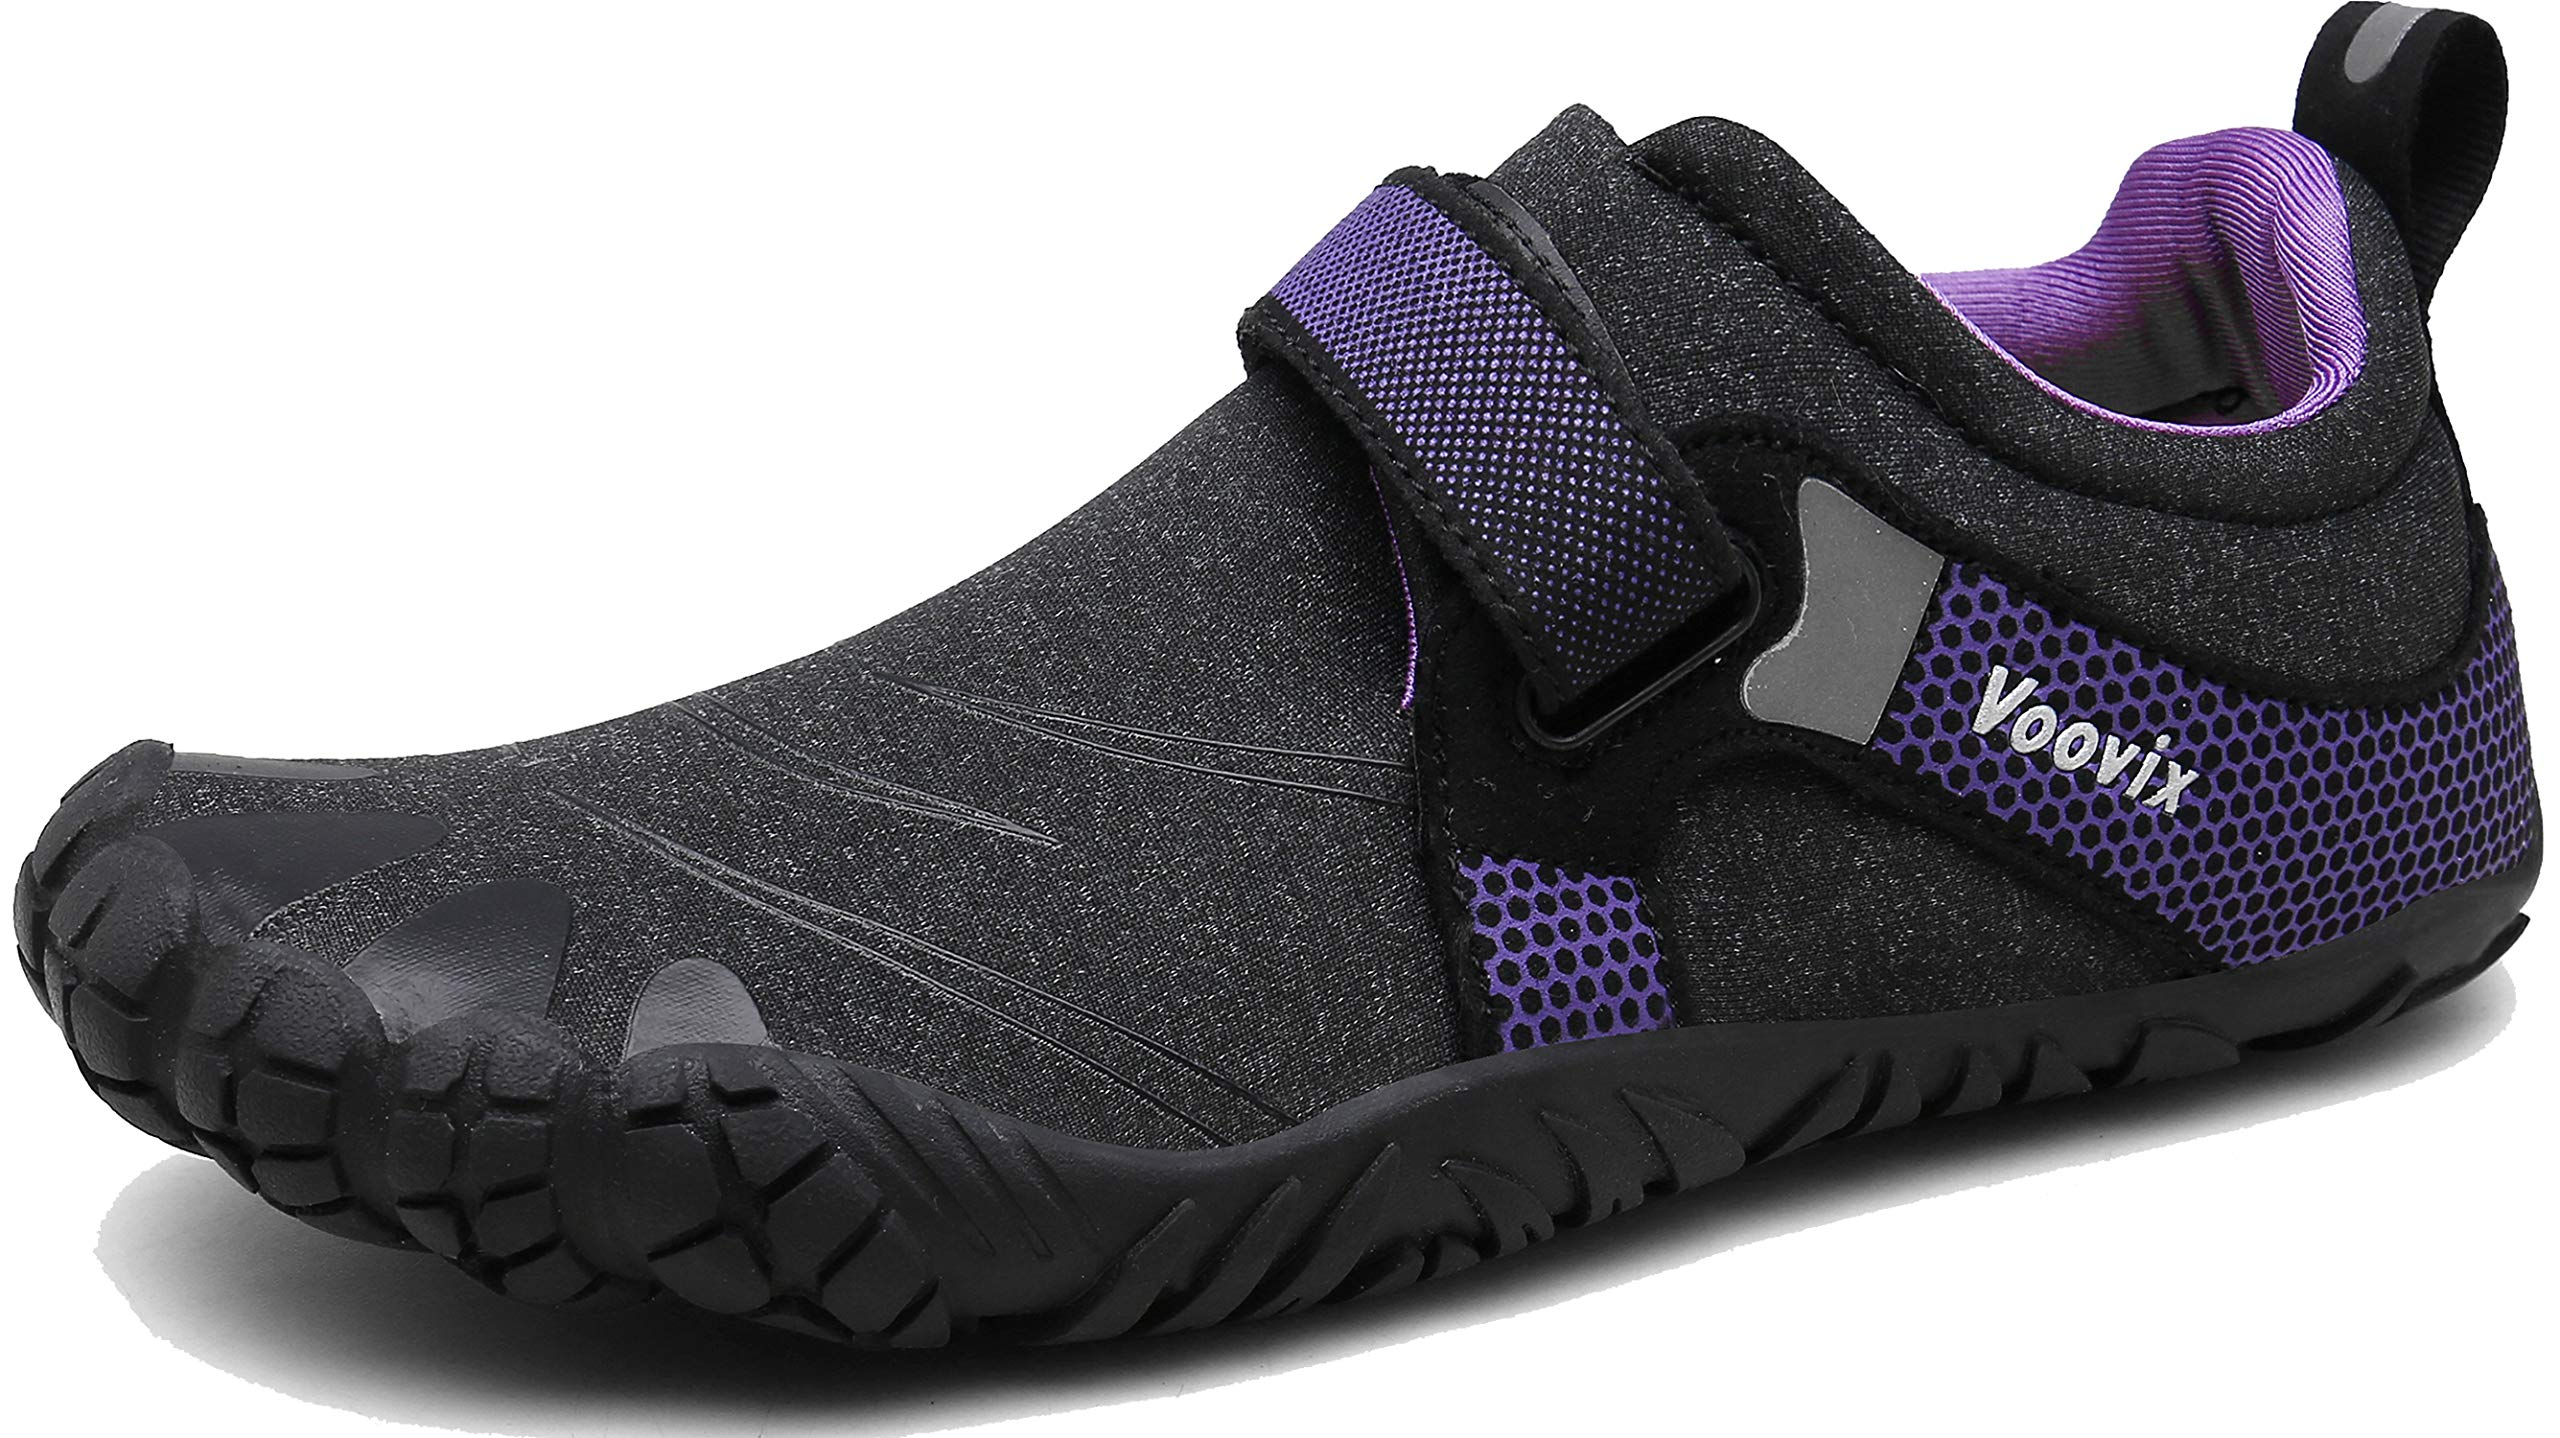 Mens Barefoot Shoes Athletic Trail Running Shoes Womens Outdoor Walking  Shoes for Hiking Cross Training- Buy Online in Bermuda at  bermuda.desertcart.com. ProductId : 154853933.